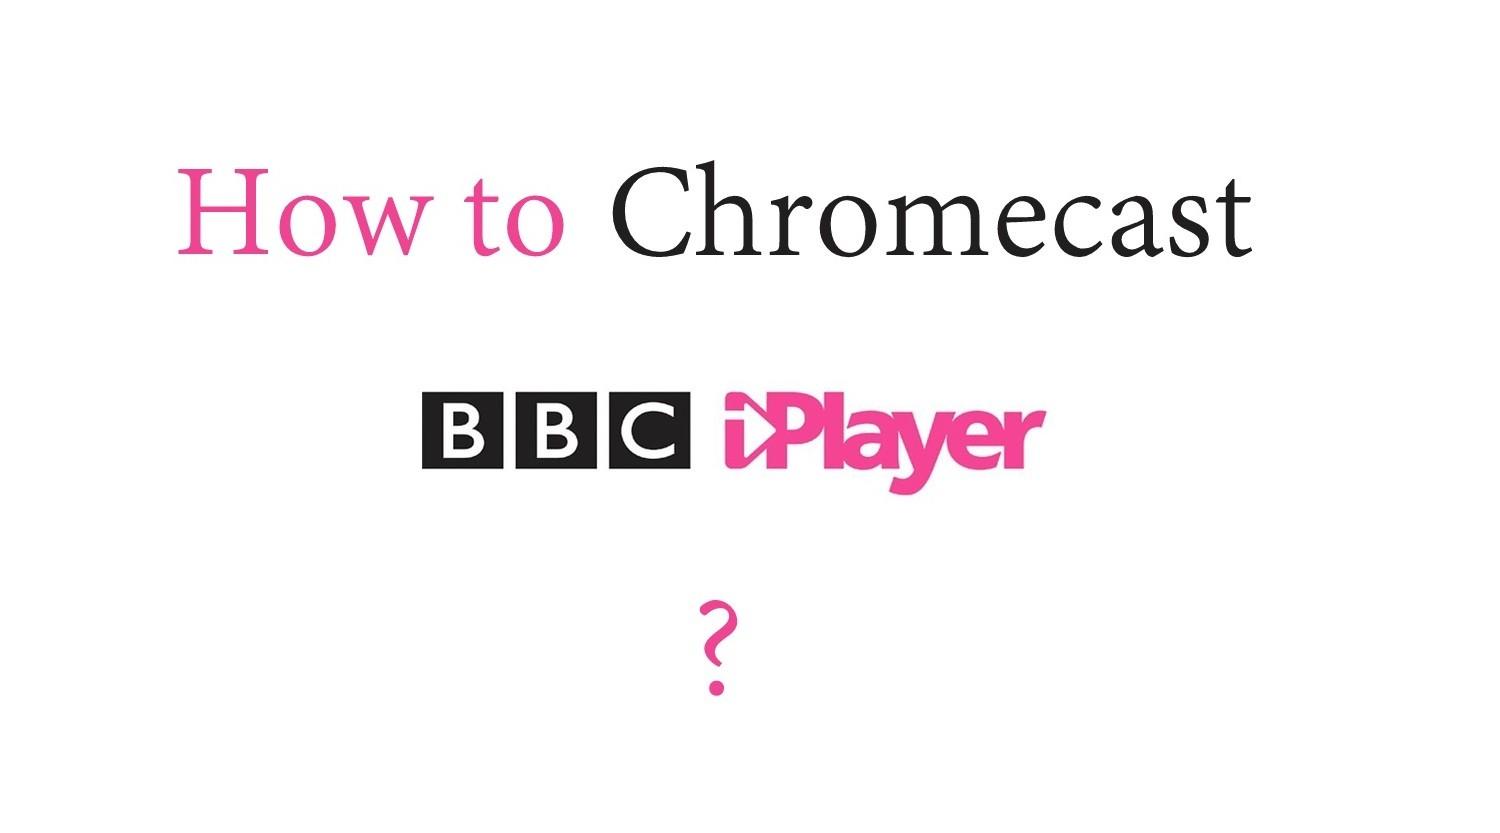 How to Chromecast BBC iPlayer to TV?